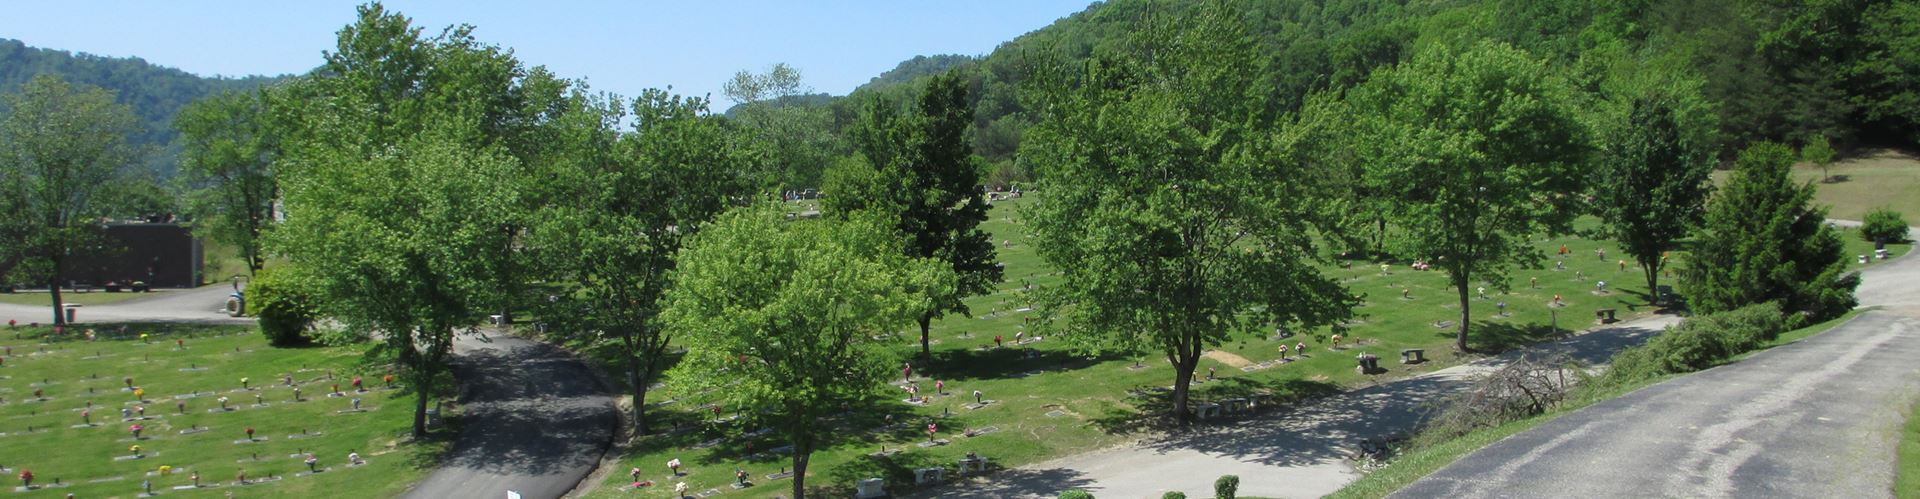 Kanawha Valley Memorial Gardens